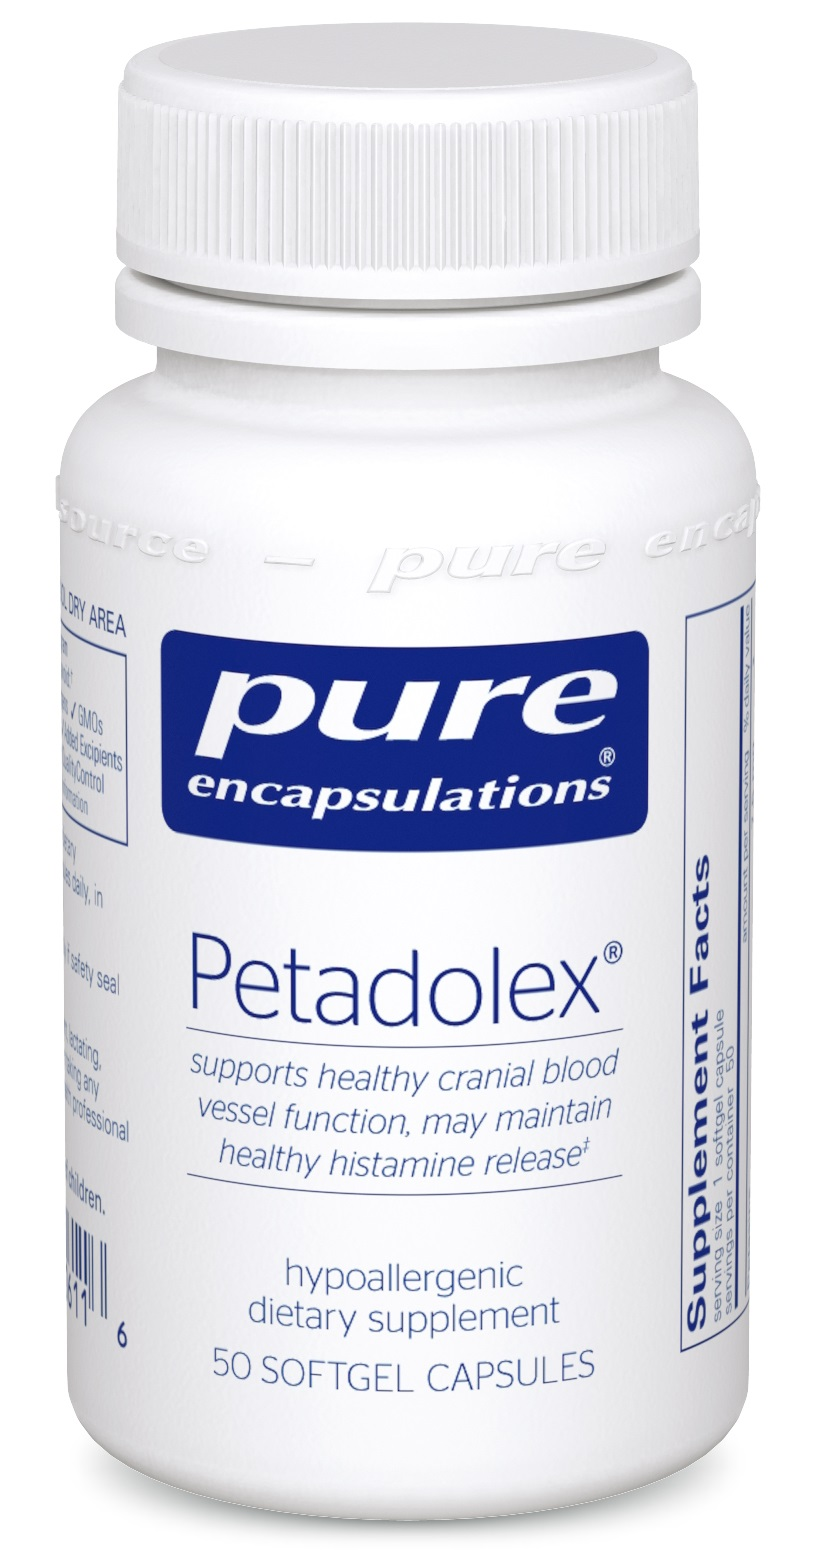 Pure Encapsulations Petadolex®